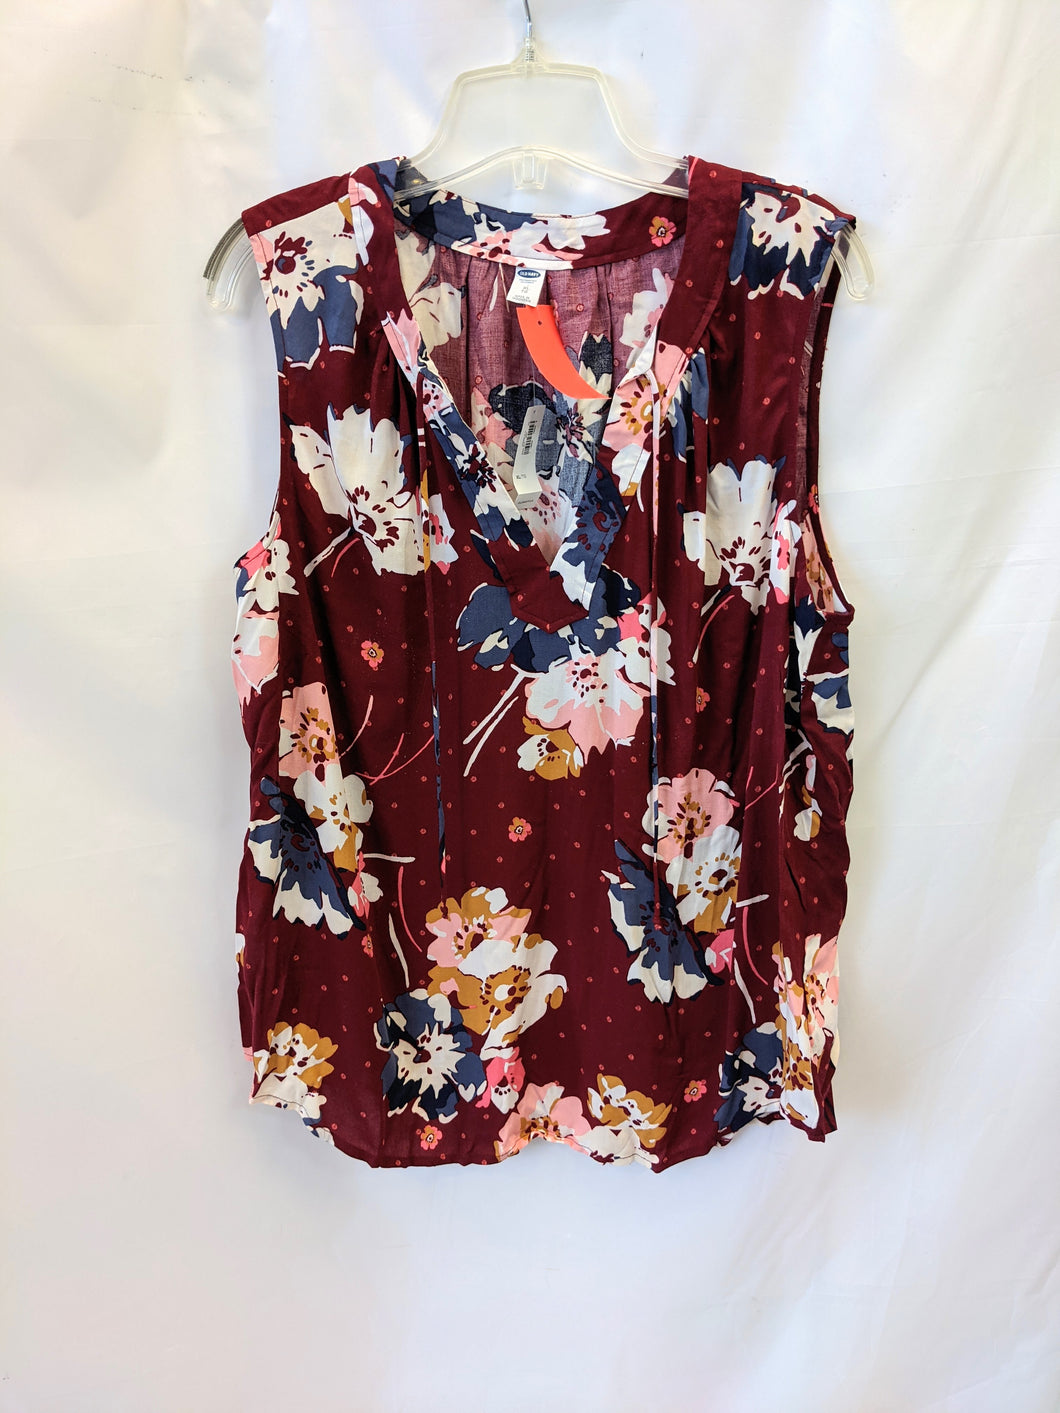 Sleeveless Top - Size XL